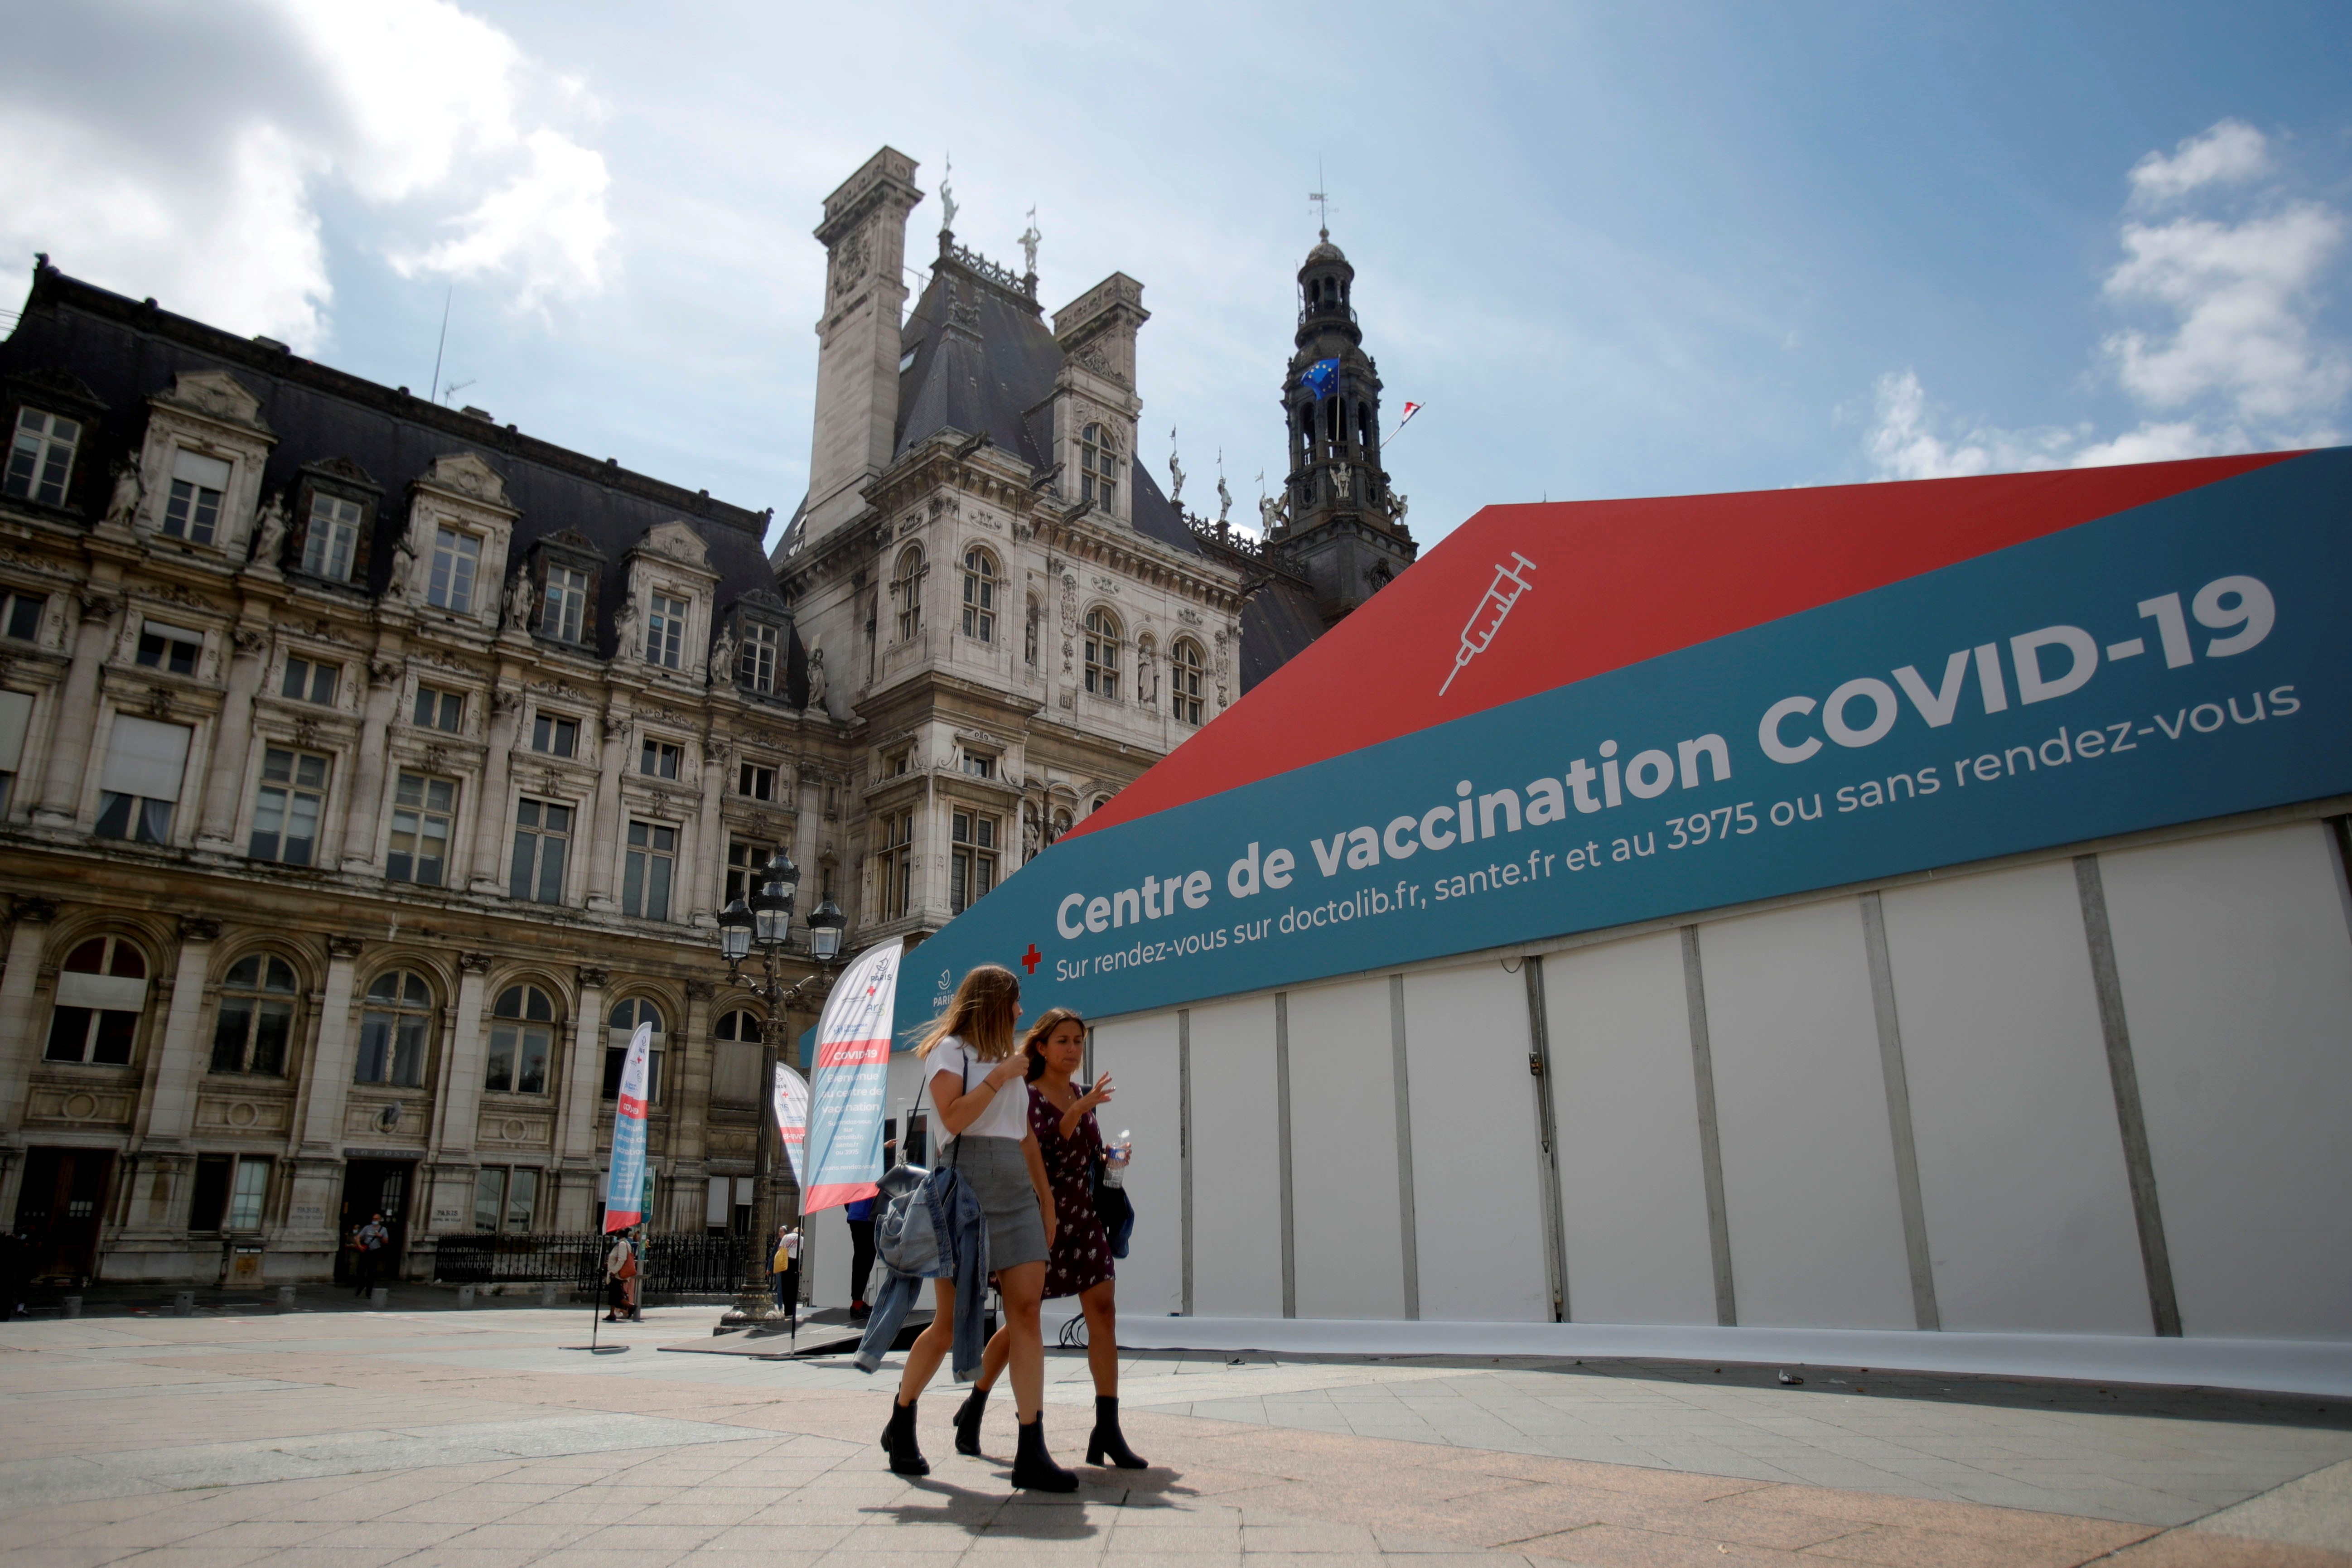 Women walk past a coronavirus disease (COVID-19) vaccination center installated in front of Paris town hall, France, July 7, 2021. REUTERS/Sarah Meyssonnier